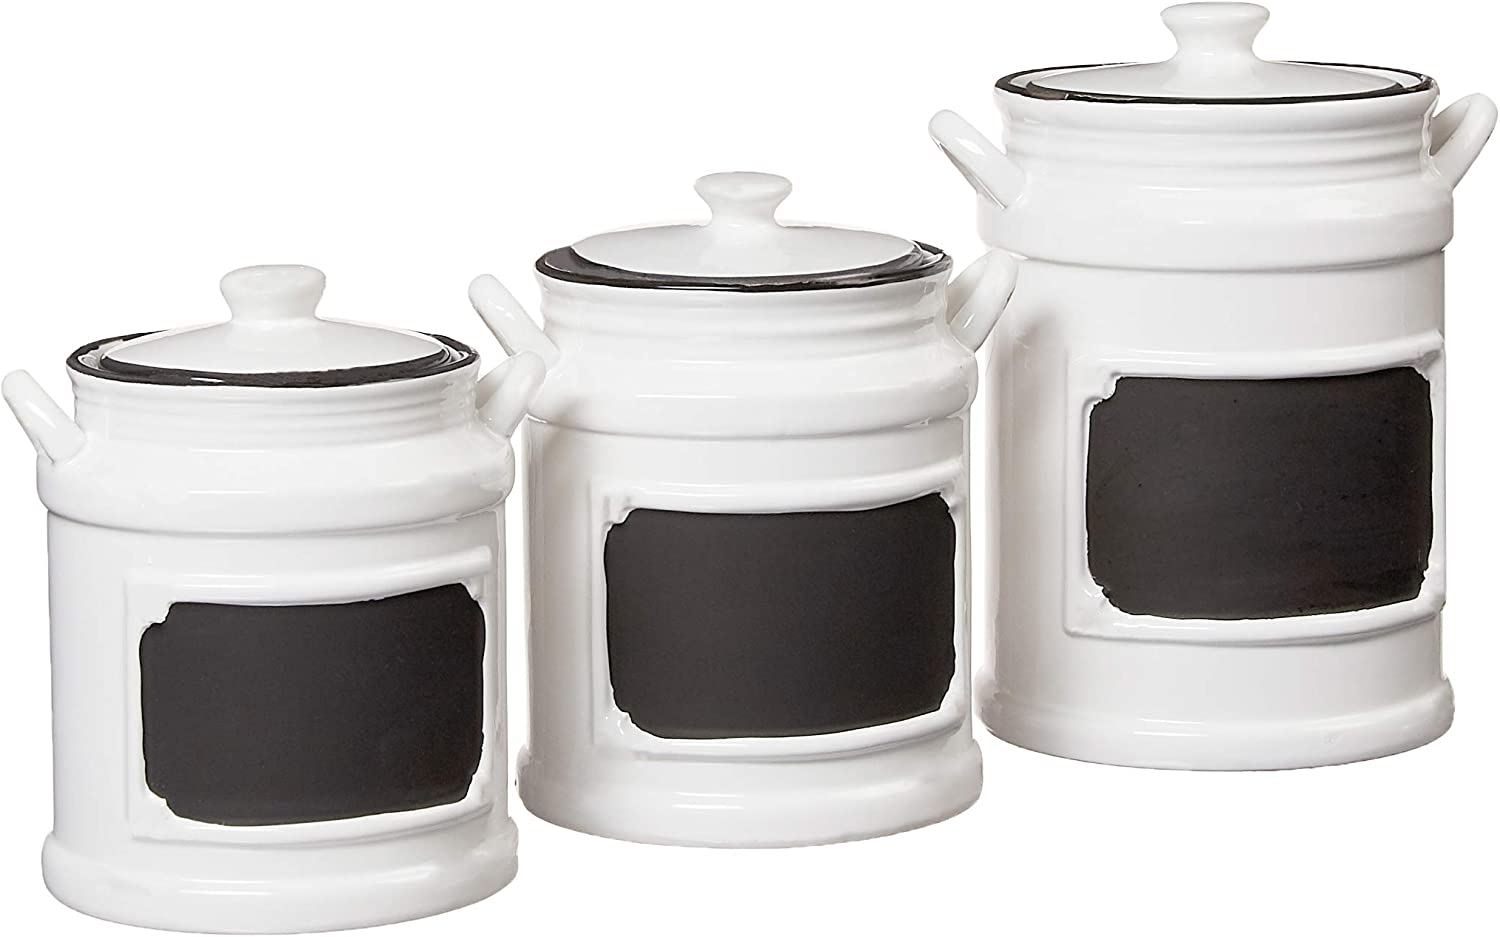 Amazon Com American Atelier Vintage Canister Set 3 Piece Ceramic Jars Chic Design With Lids For Cookies Candy Coffee Flour Sugar Rice Pasta Cereal More 21x8x11 White Black Kitchen Dining